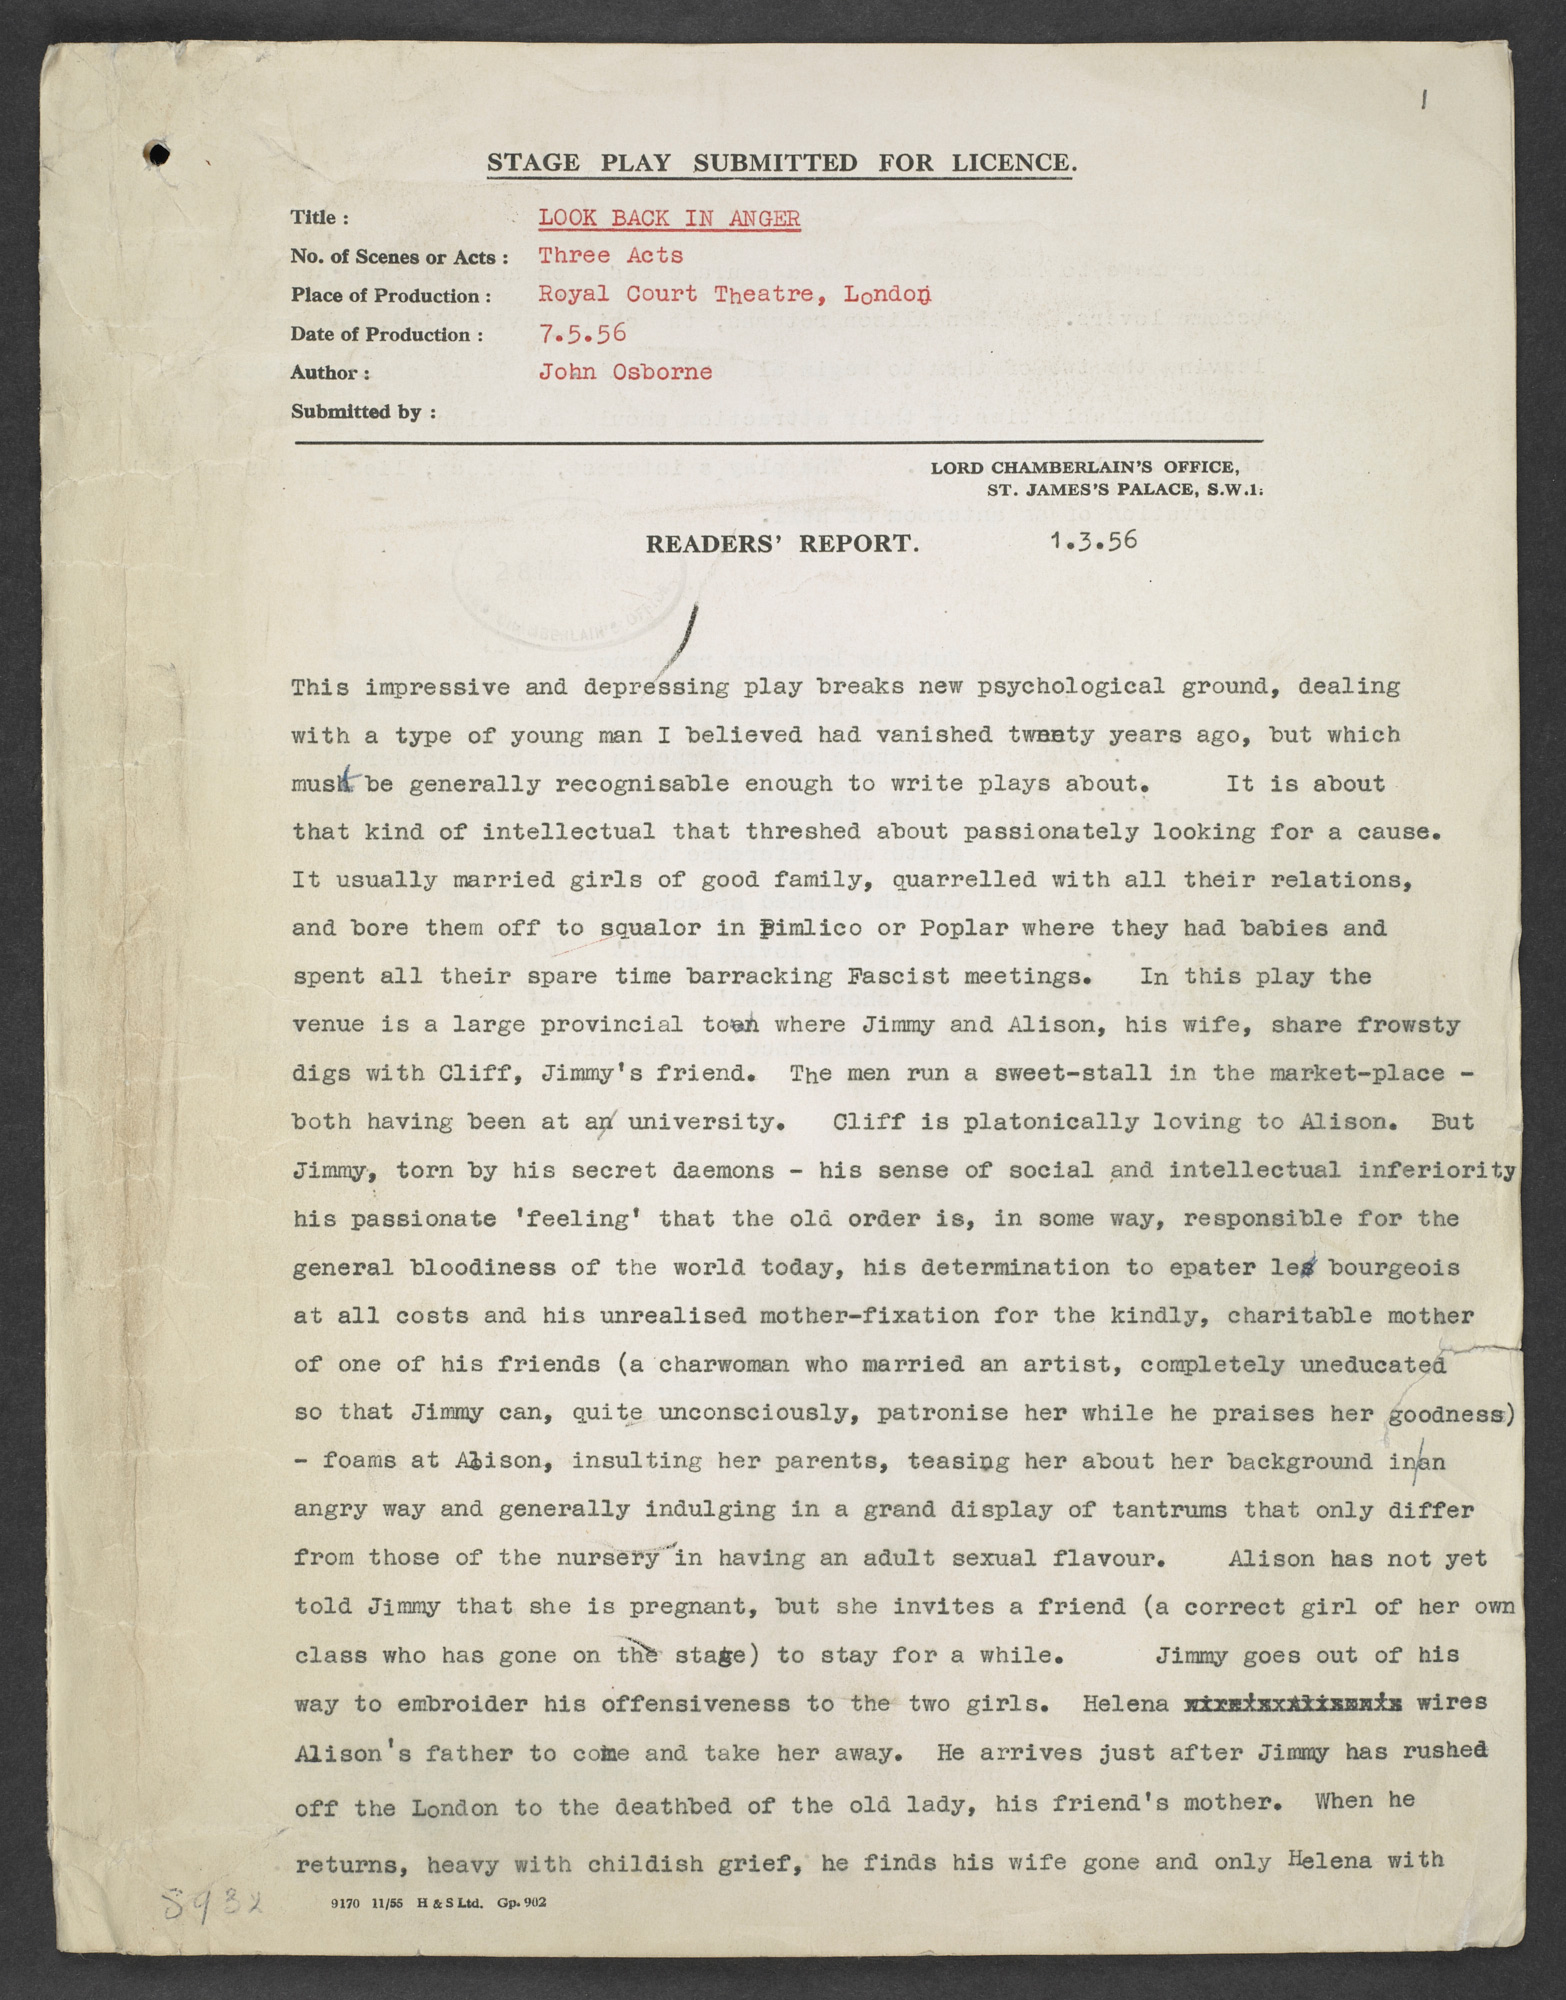 Lord Chamberlain's report and correspondence about Look Back in Anger